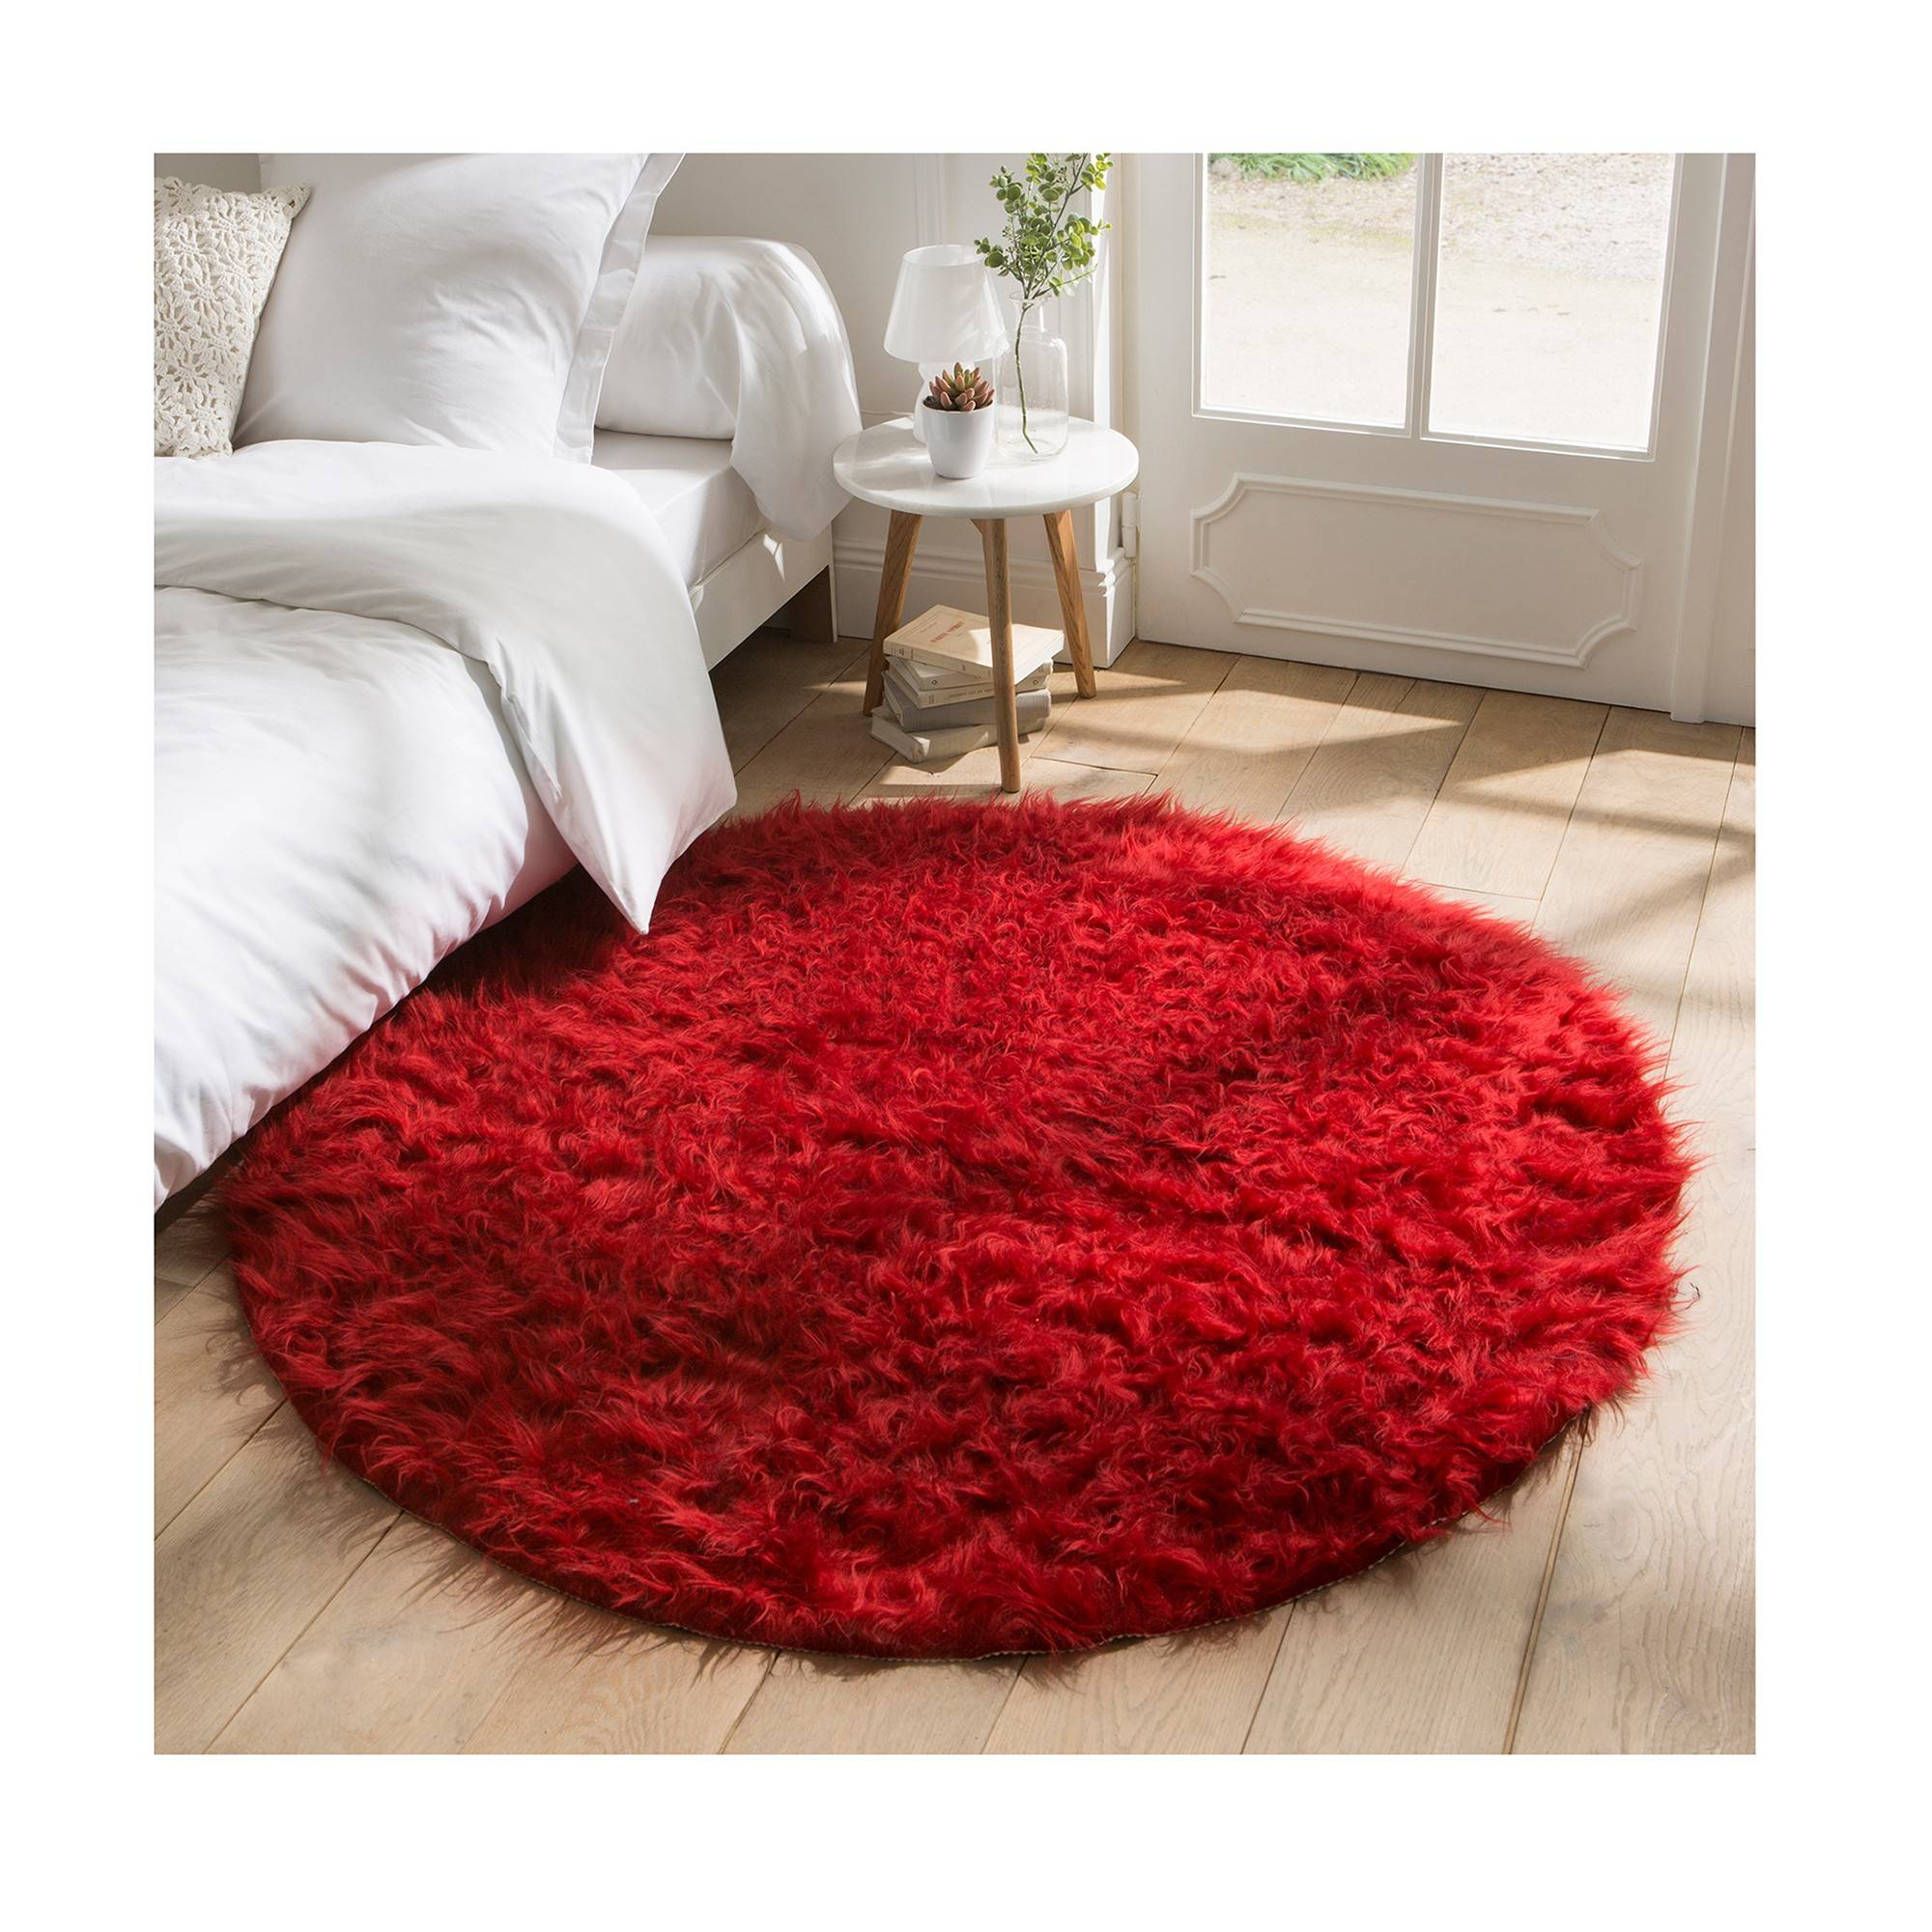 Tapis rond poils longs - rouge - Blancheporte